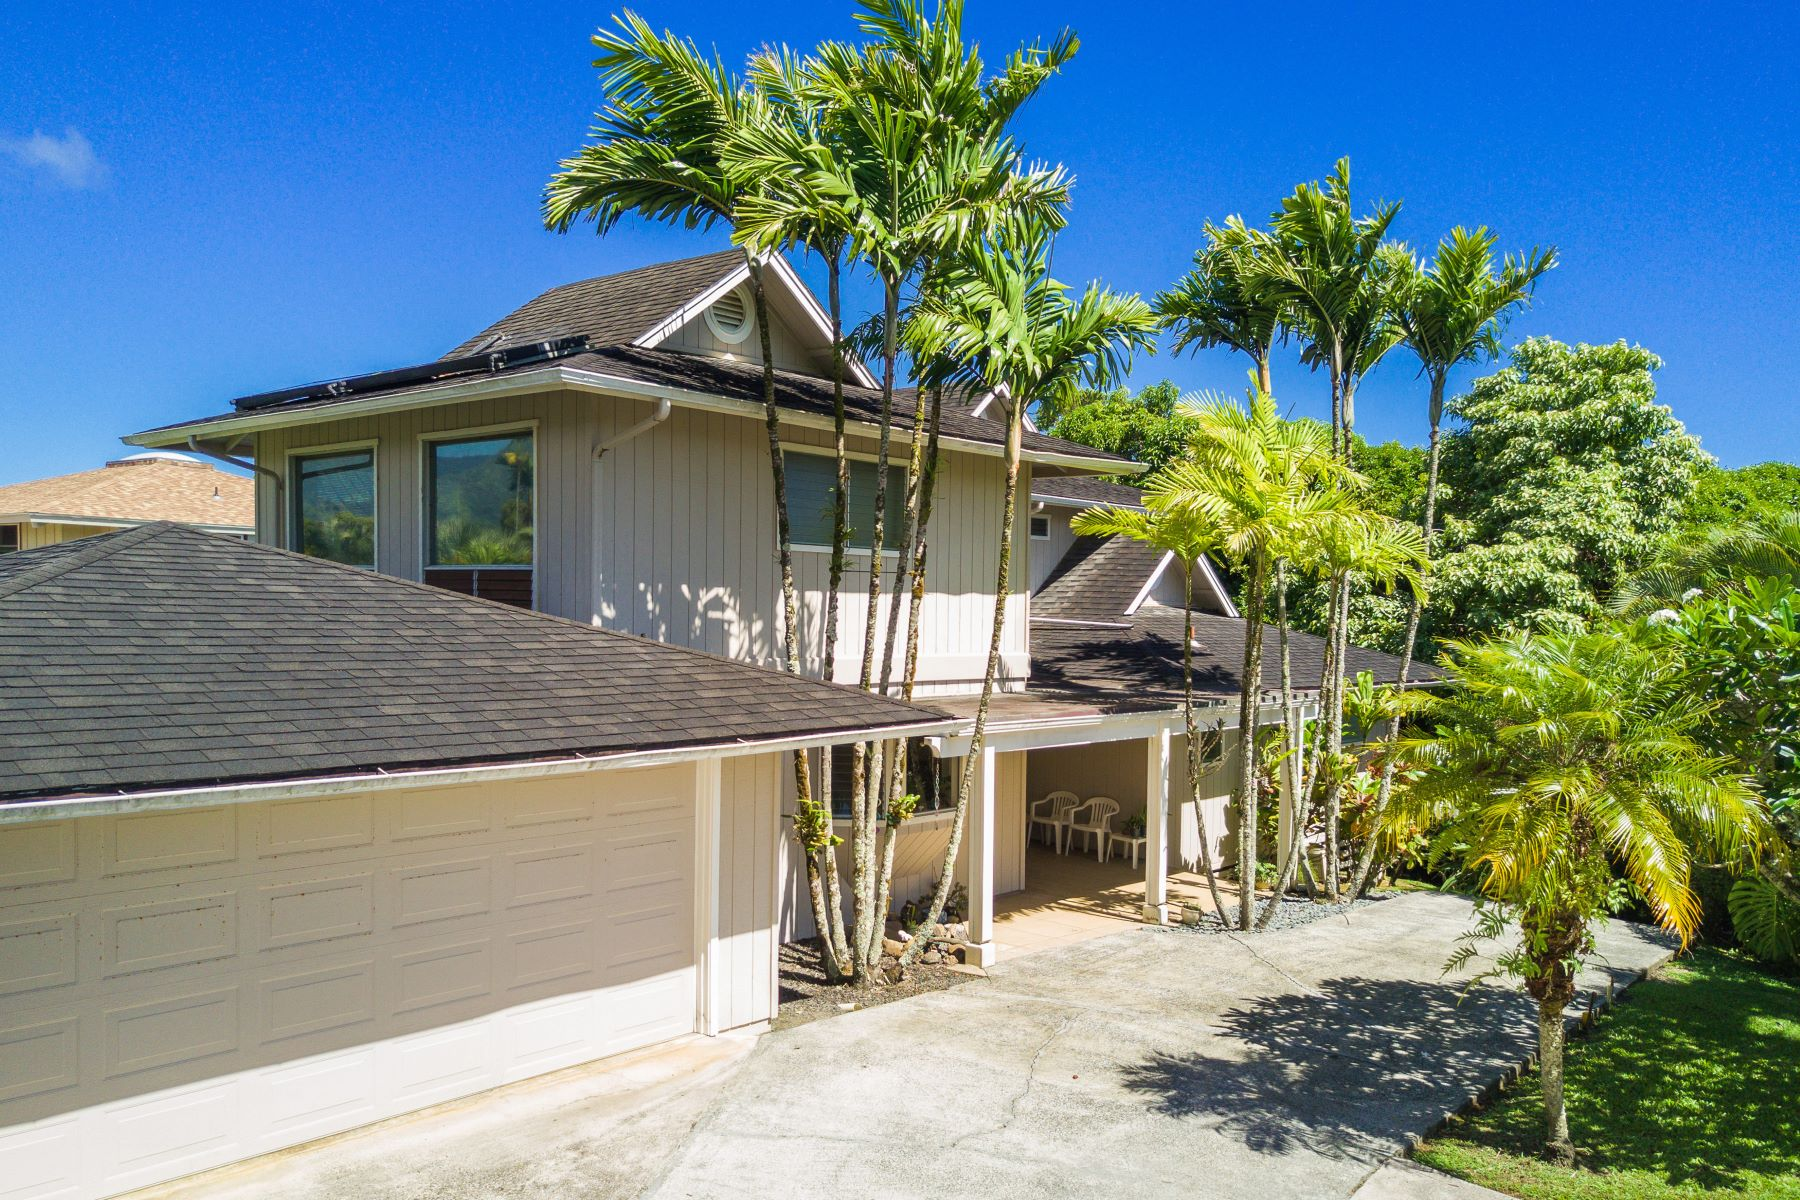 Частный односемейный дом для того Продажа на Three Bedroom Home with Mountain, Waterfall, Ocean Horizon Views in Princeville 4194 Kekuanaoa Lane Princeville, Гавайи, 96722 Соединенные Штаты